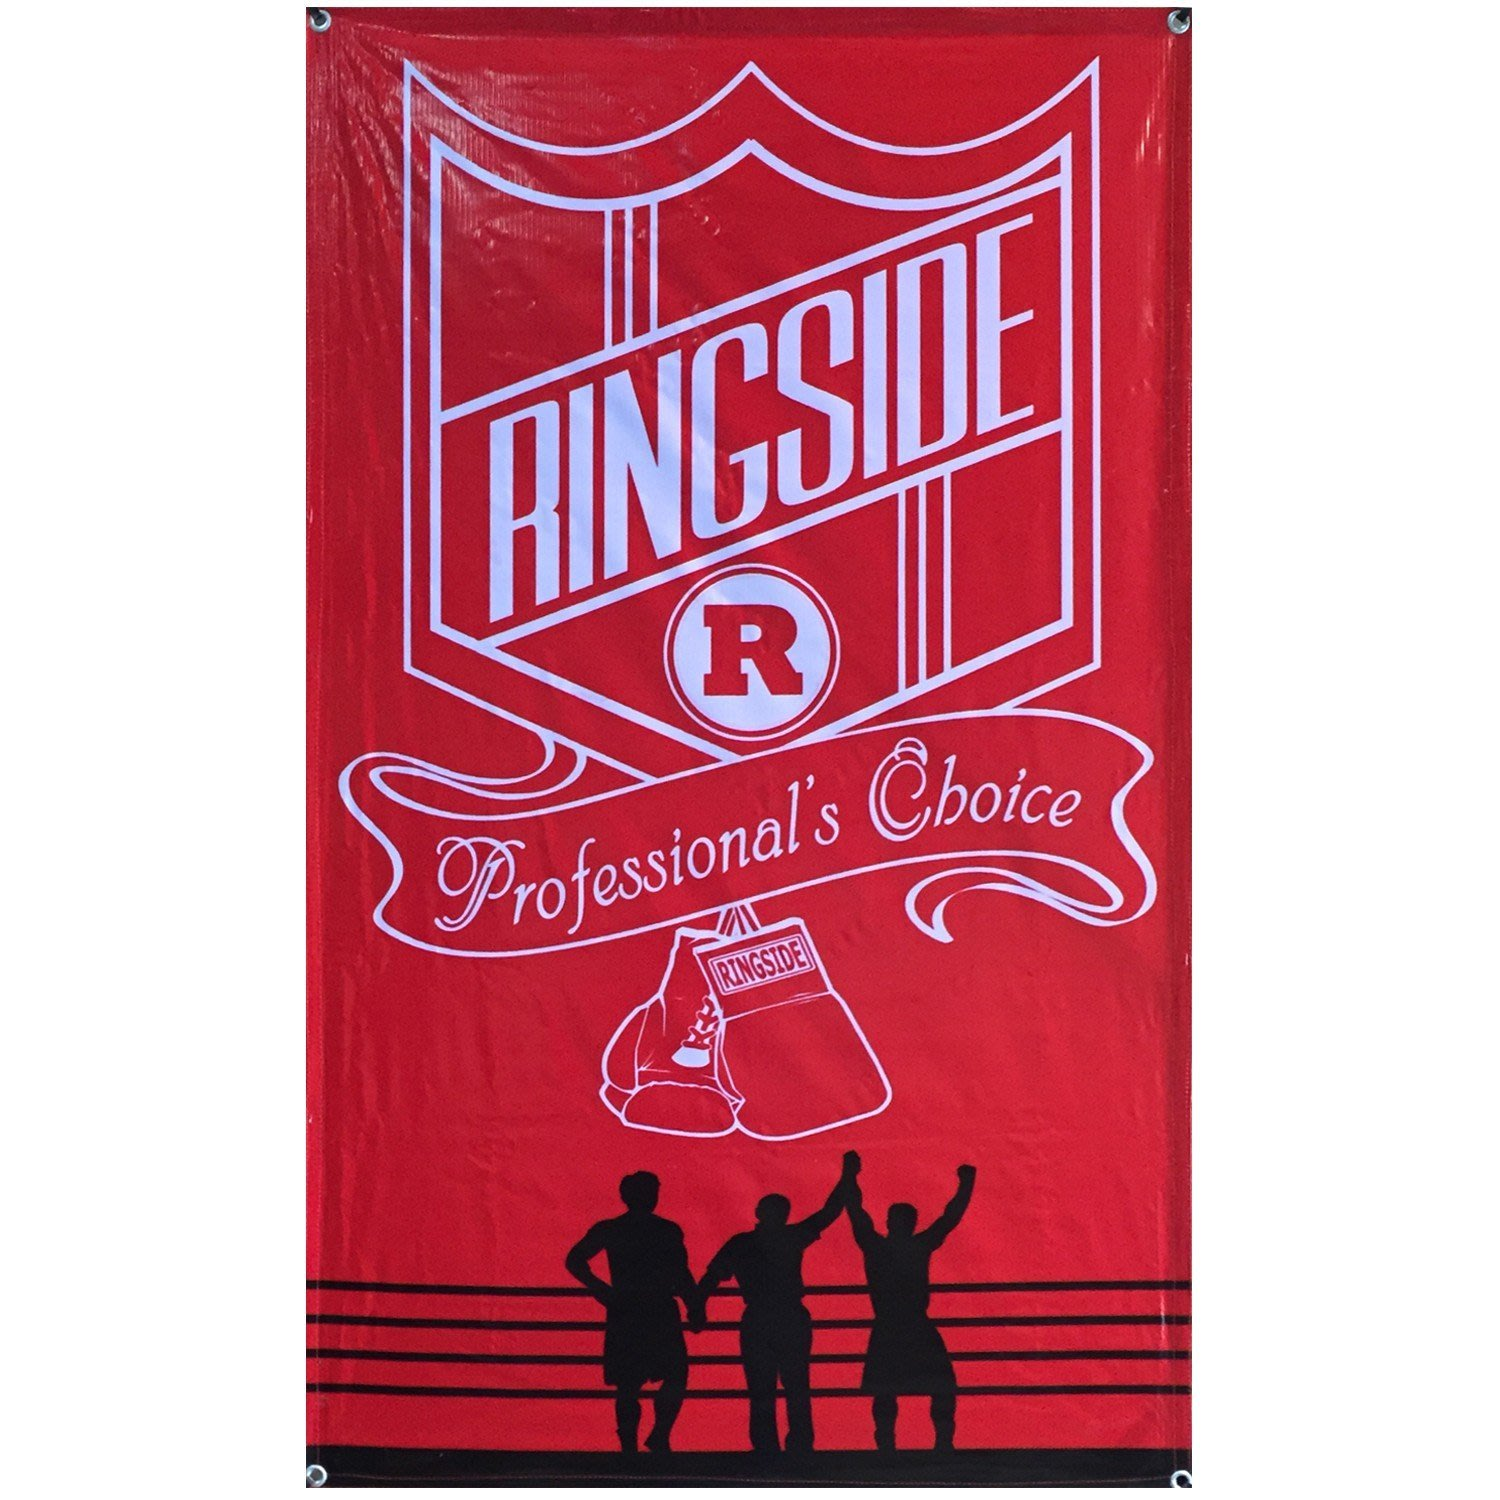 Ringside Professionals Choice Banner 掛圖